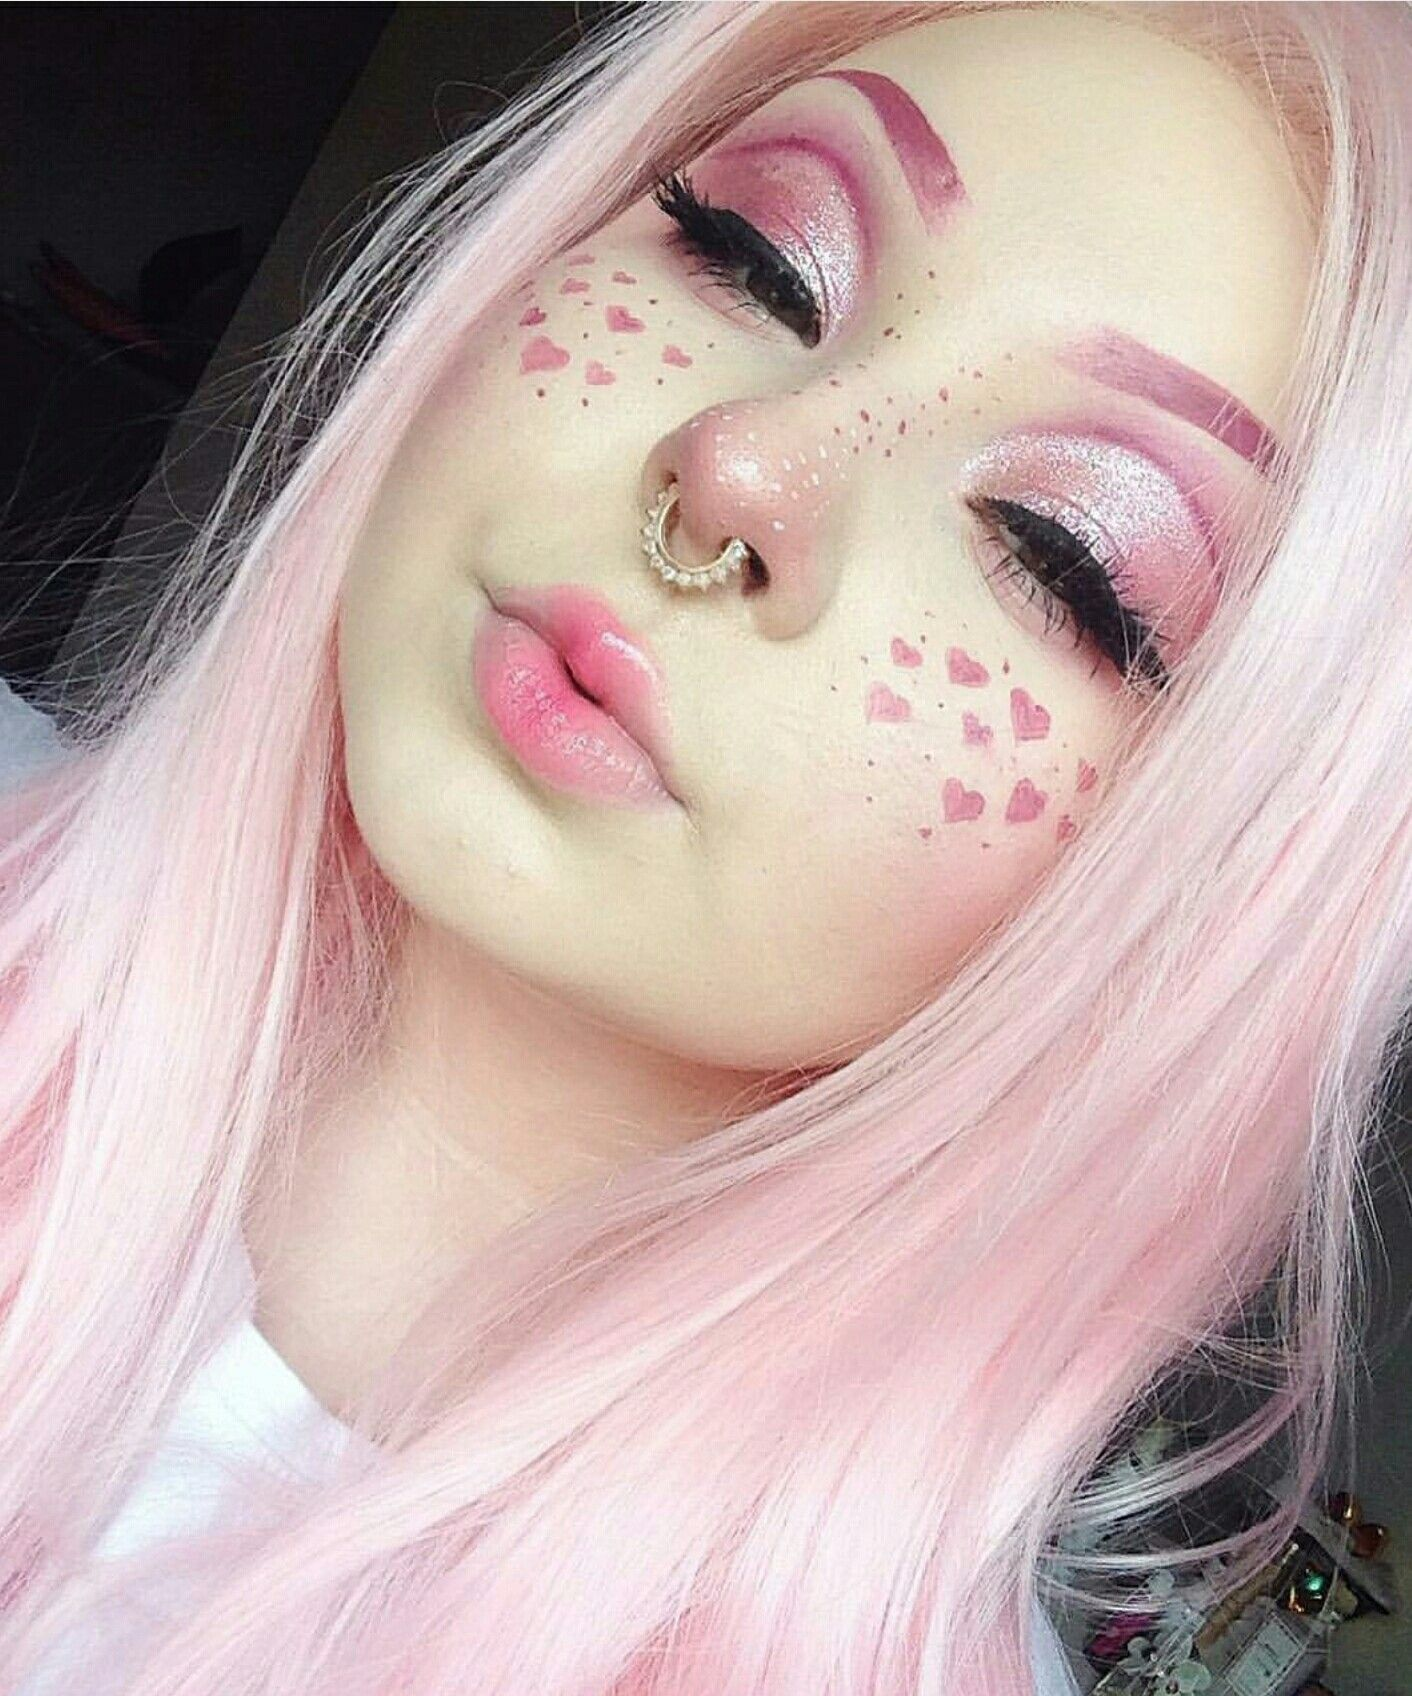 Pin By Merie Herrera On Pink Hair Aesthetic Makeup Pastel Goth Makeup Goth Makeup